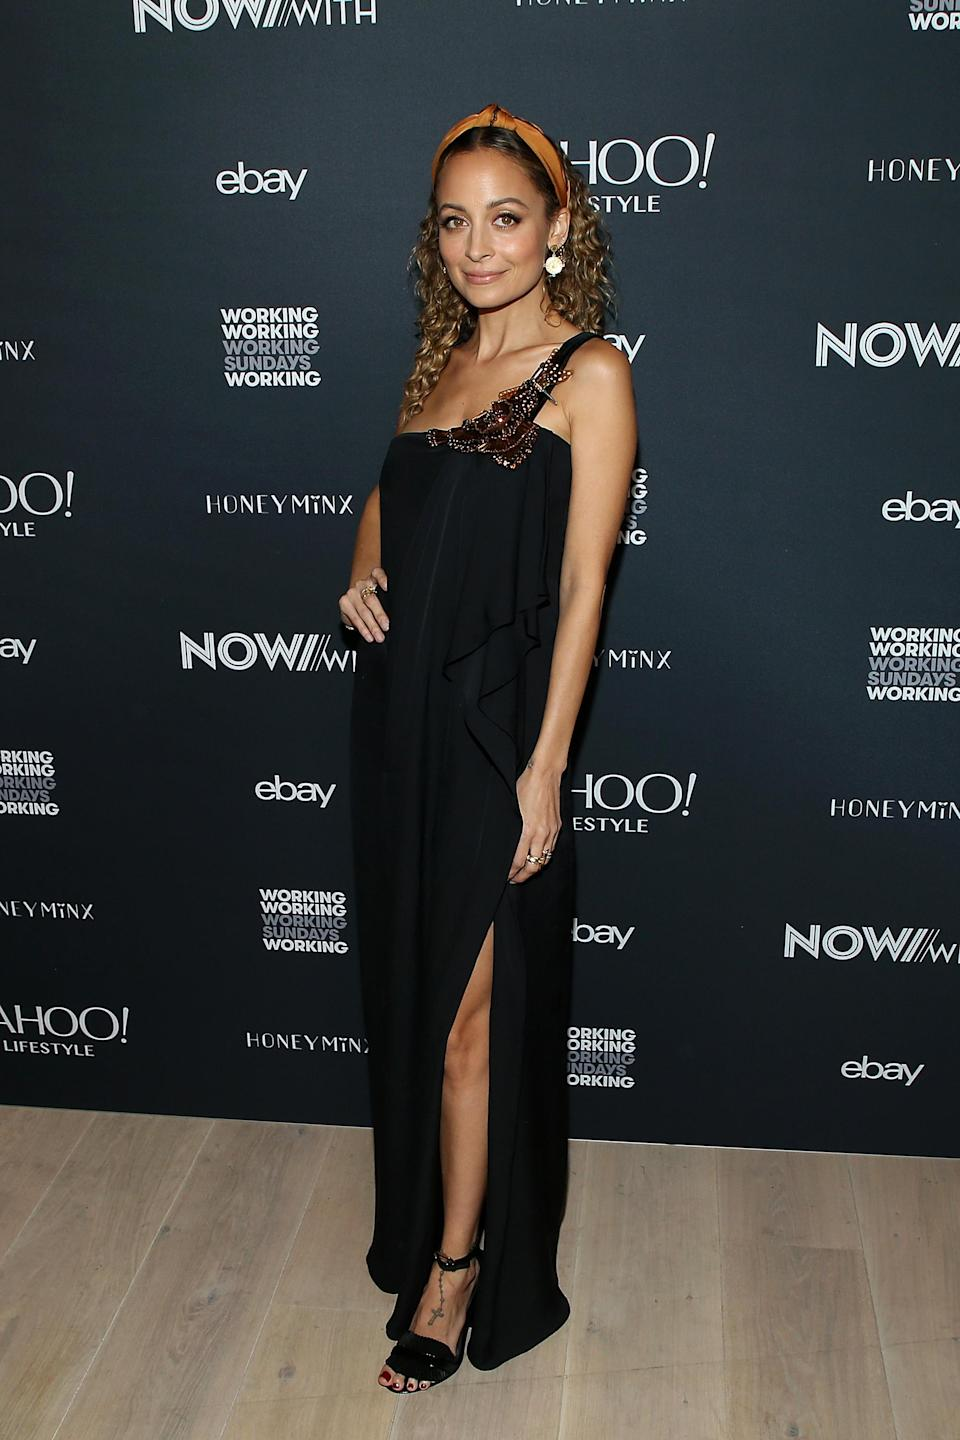 Nicole Richie at Yahoo Lifestyle's NowWith shopping video launch in Los Angeles. (Photo: Getty Images)